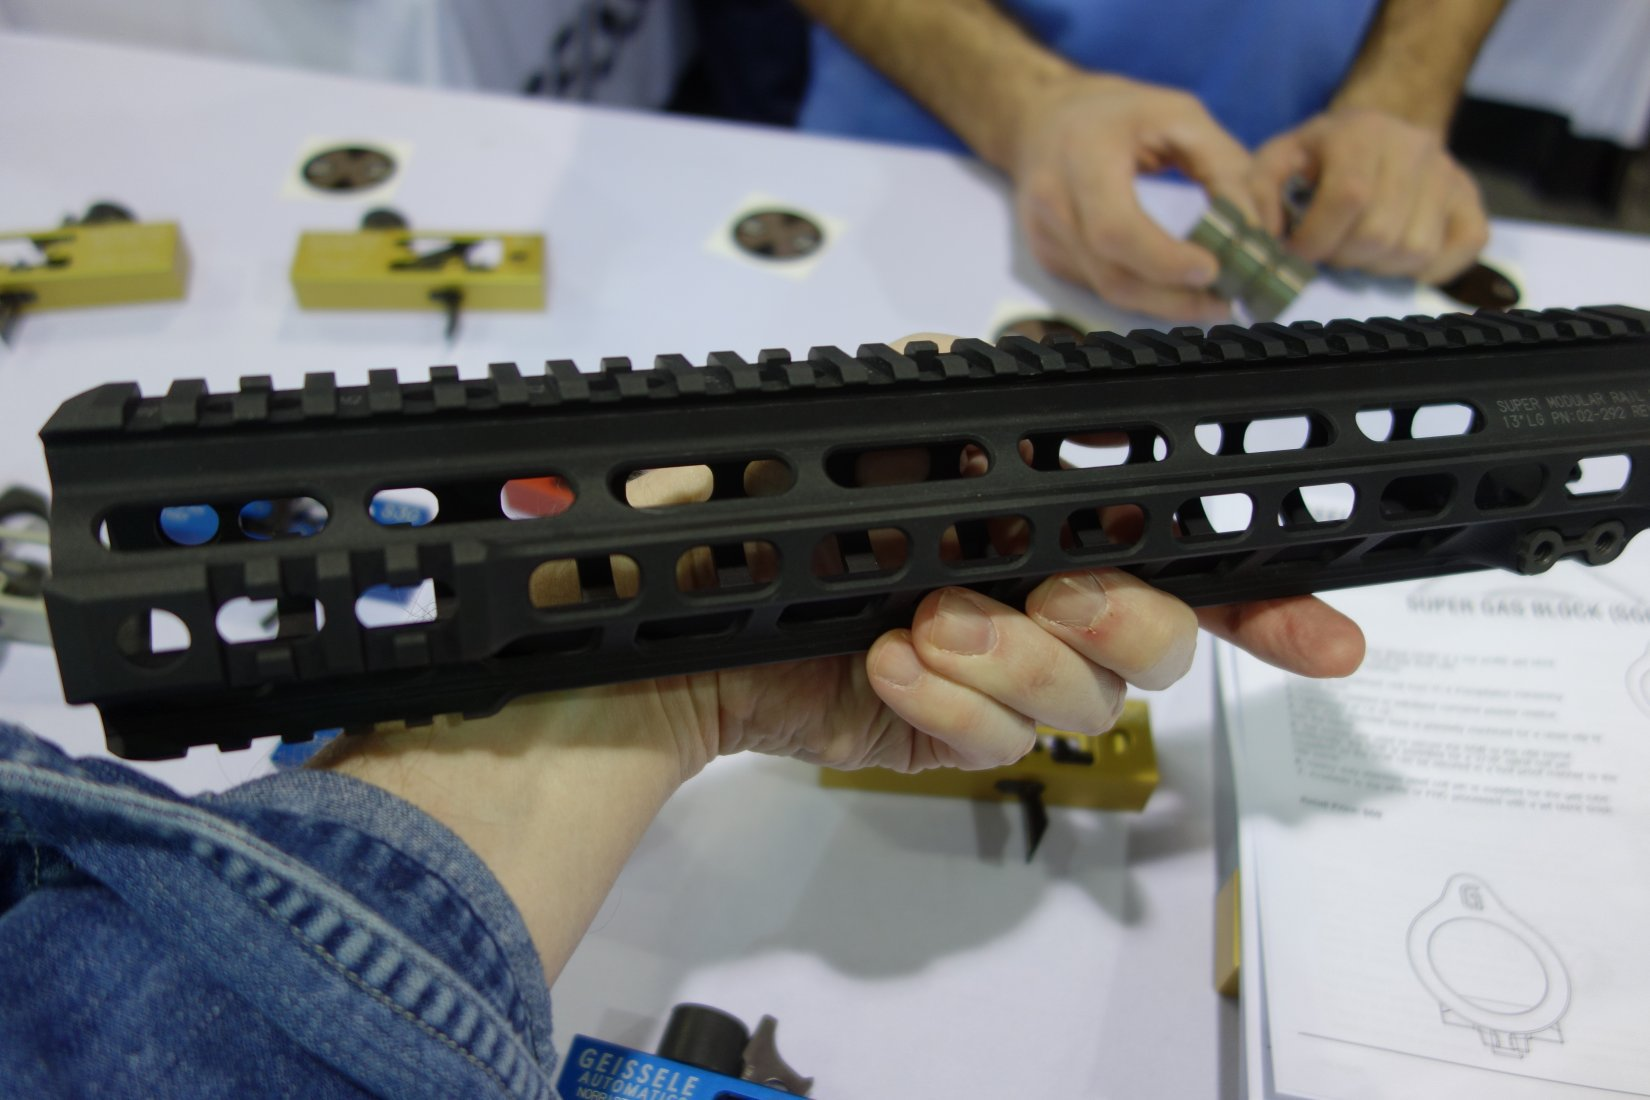 Geissele Super Modular Rail MK4 (SMR) 13″/9.5″ Tactical Handguard/Lightweight Rail System with Proprietary Barrel Nut Mounting System and Nitrided Lo-Pro Super Gas Block for the Tactical AR-15 Carbine (Video!)